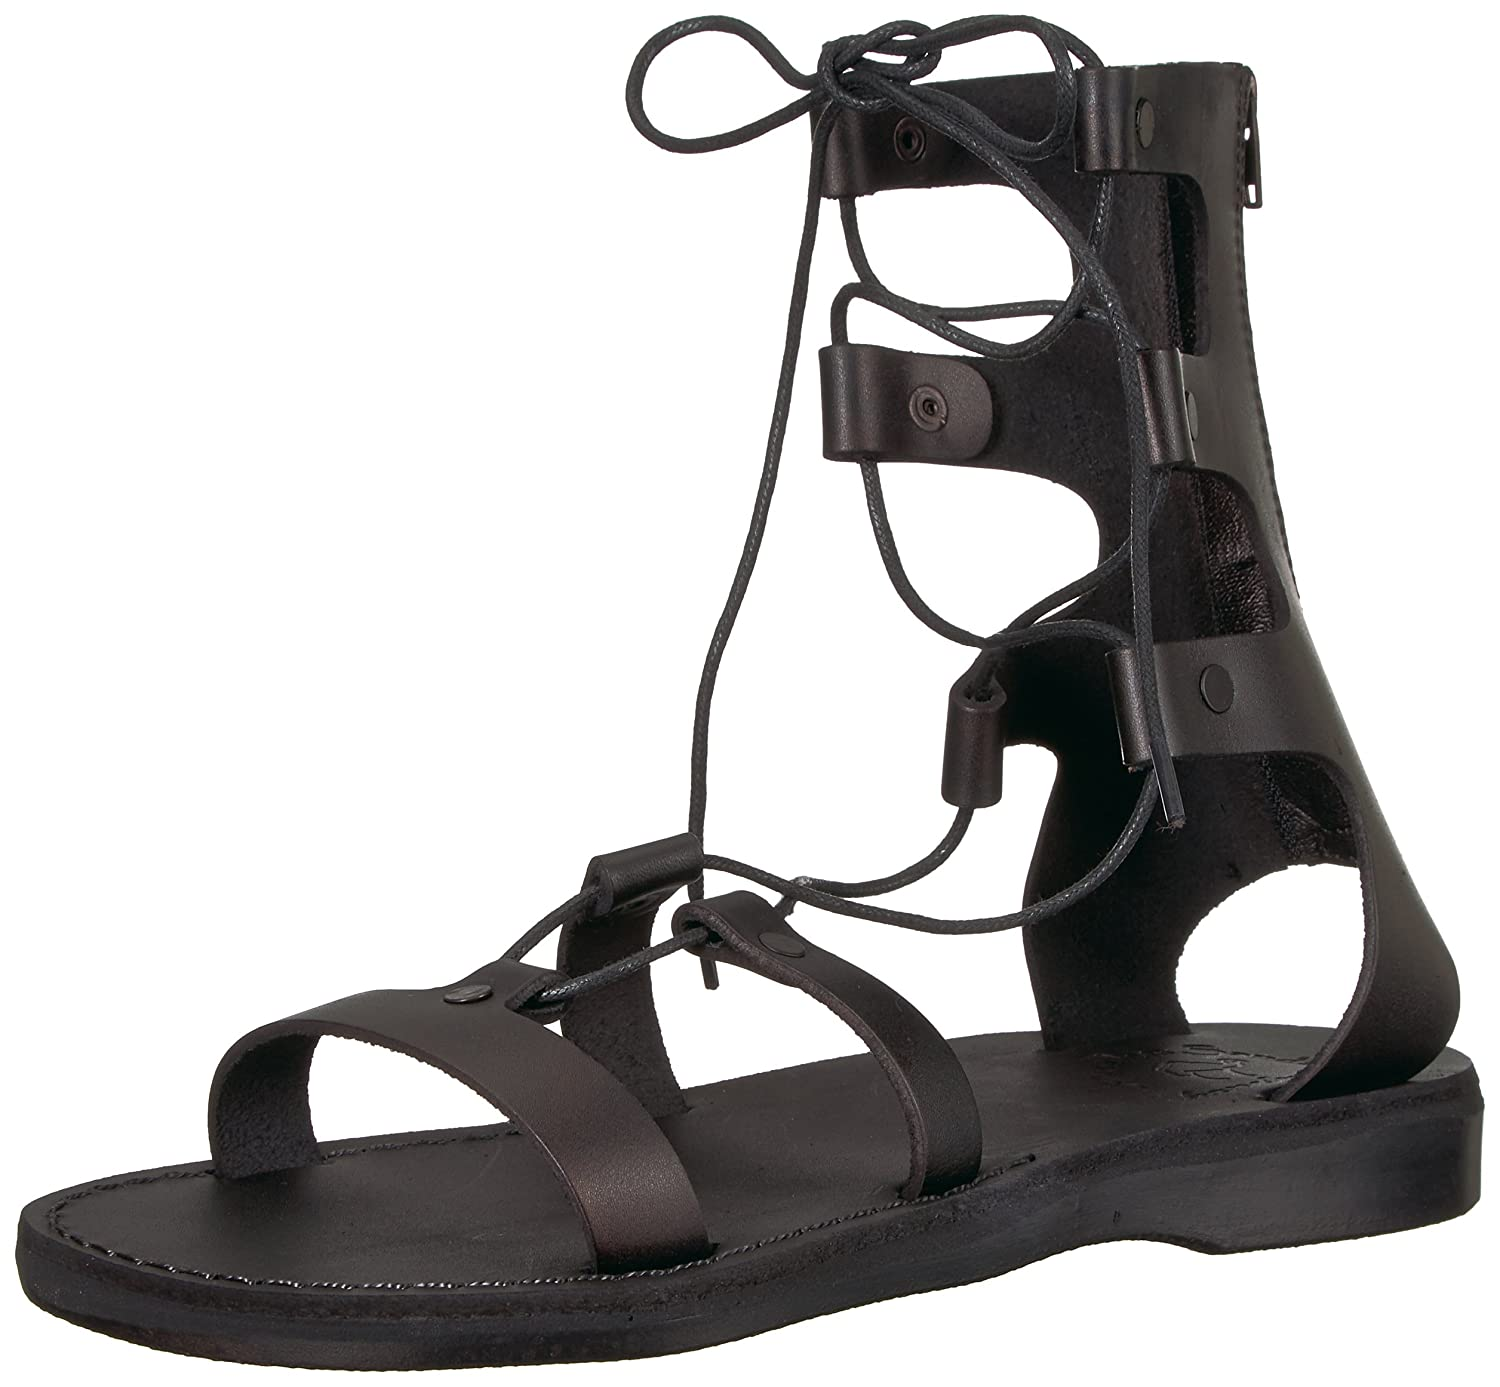 Jerusalem Sandals Women's Rebecca Sandal B075KZD34J 36 Medium EU (5-5.5 US)|Black